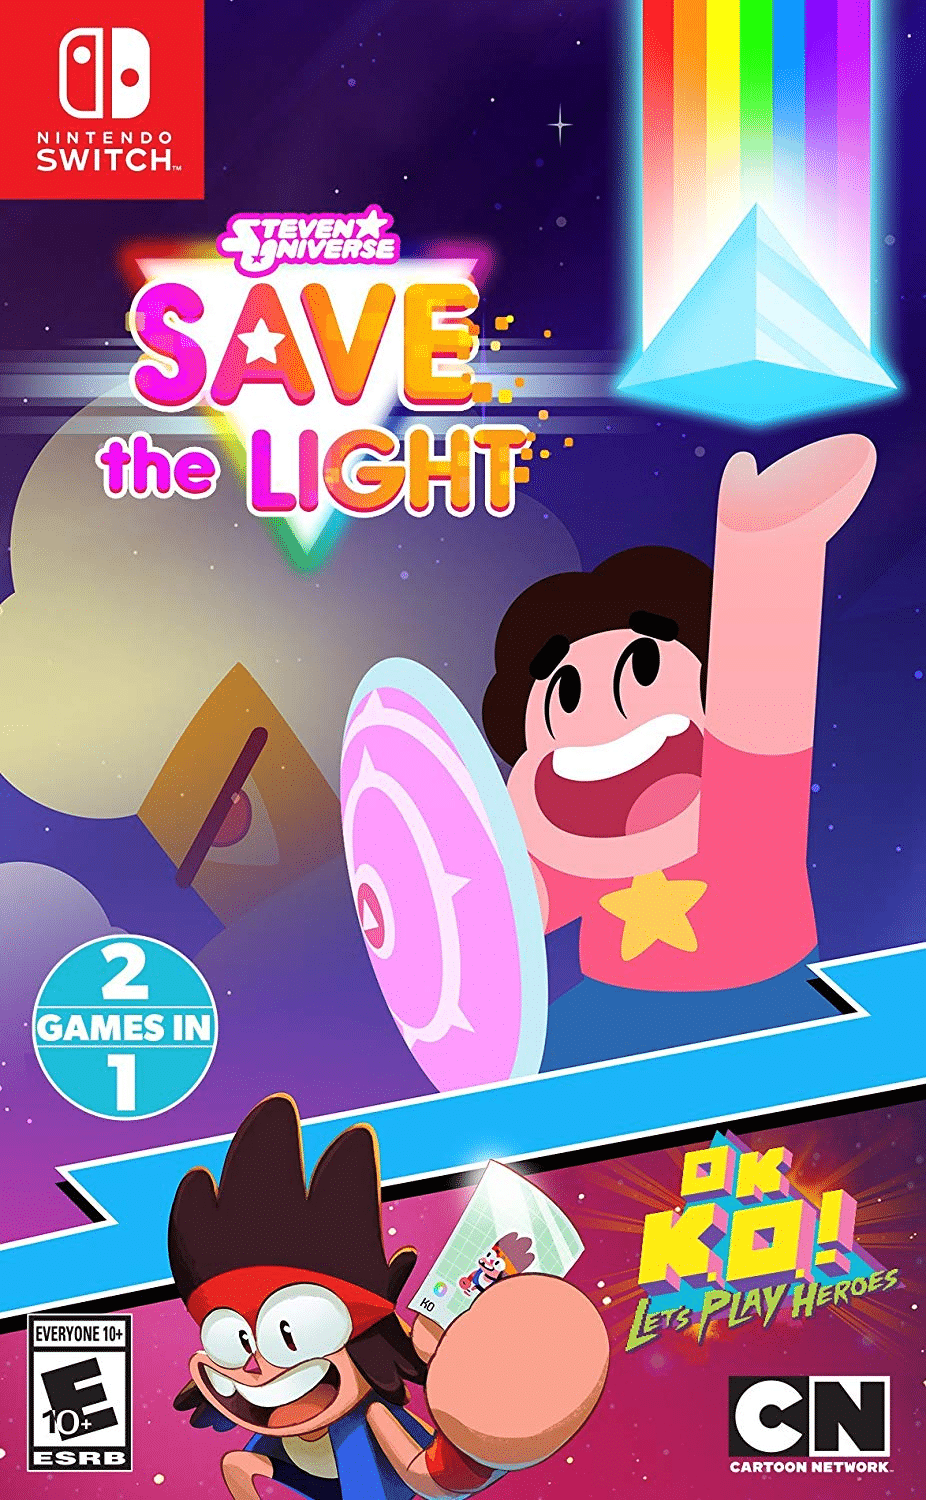 Steven Universe Save The Light And OK K.O.! Let's Play Heroes Video Games To Be Released As A Two In One Bundle Also For Nintendo Switch